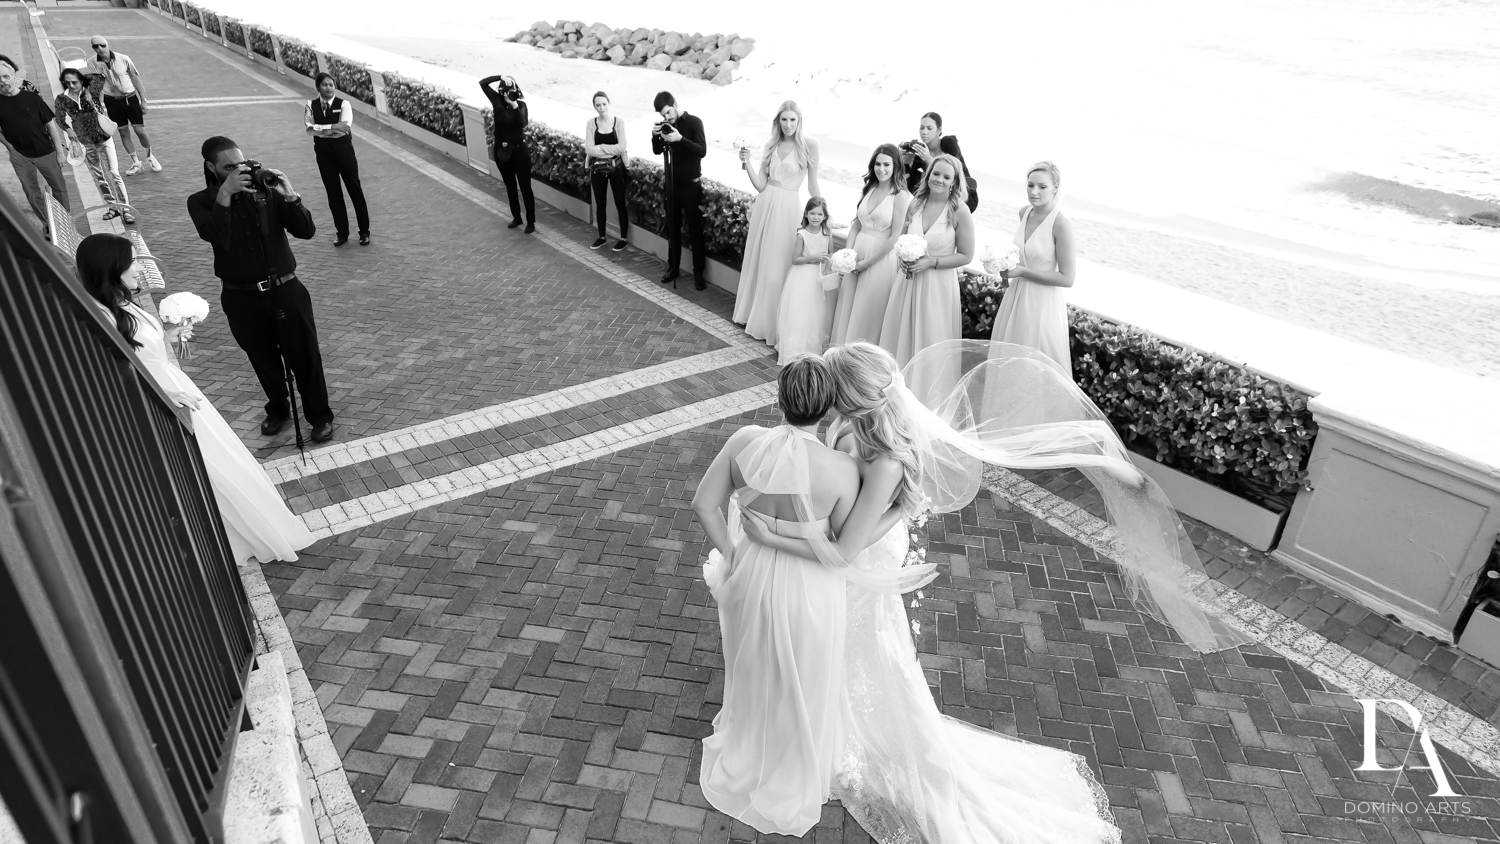 photojouranlism at Extravagant Wedding at The Breakers Palm Beach by Domino Arts Photography